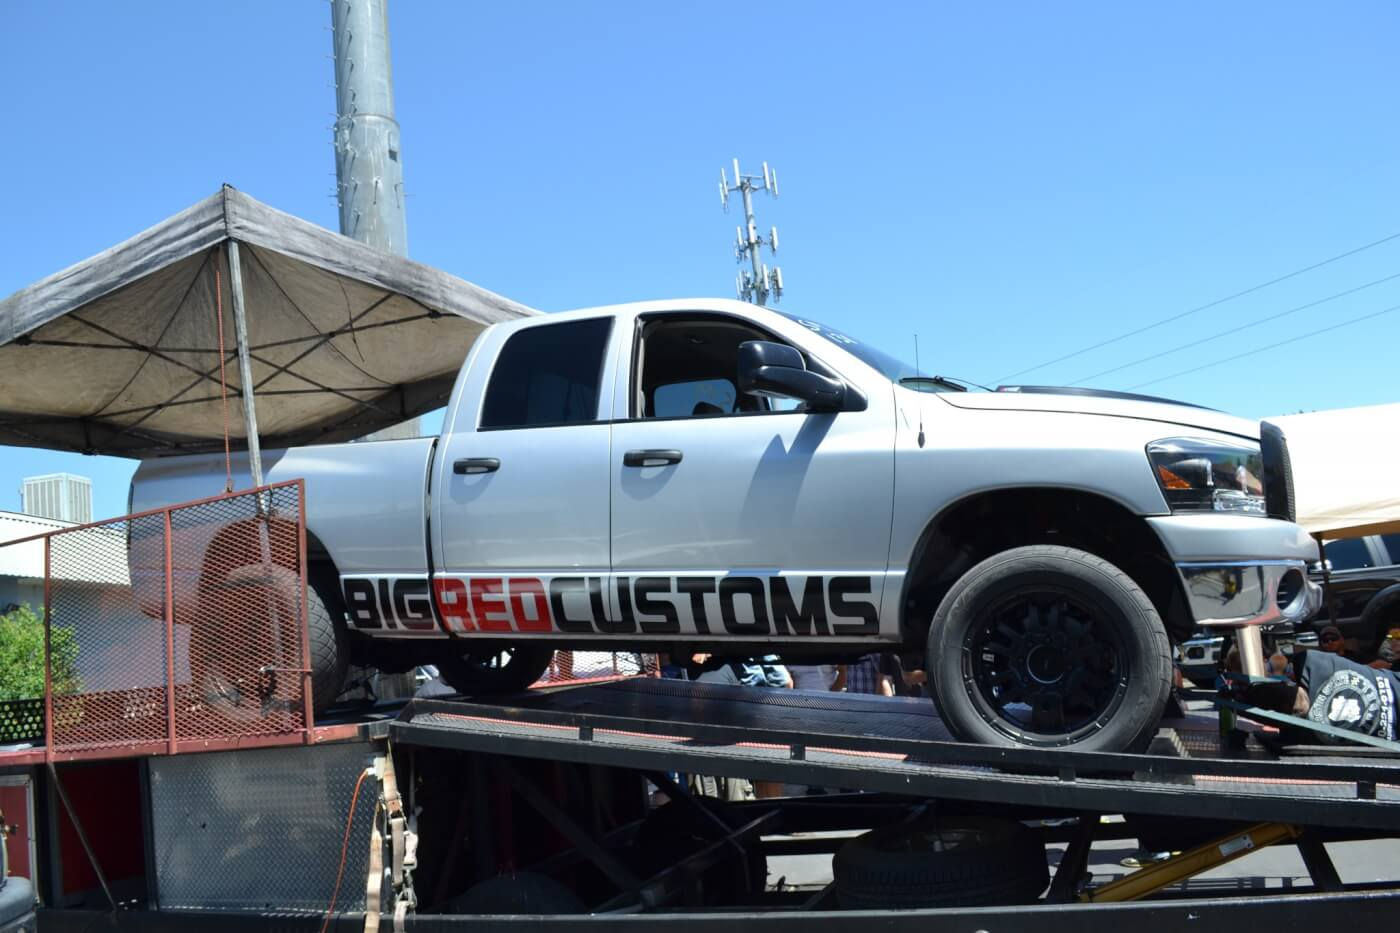 Some competitors who had run at the track decided to test their rides on the dyno as well. This Dodge from Big Red Customs laid down close to 700 rear-wheel horsepower with a 73mm turbocharger and some 250 hp injectors from Industrial Injection.